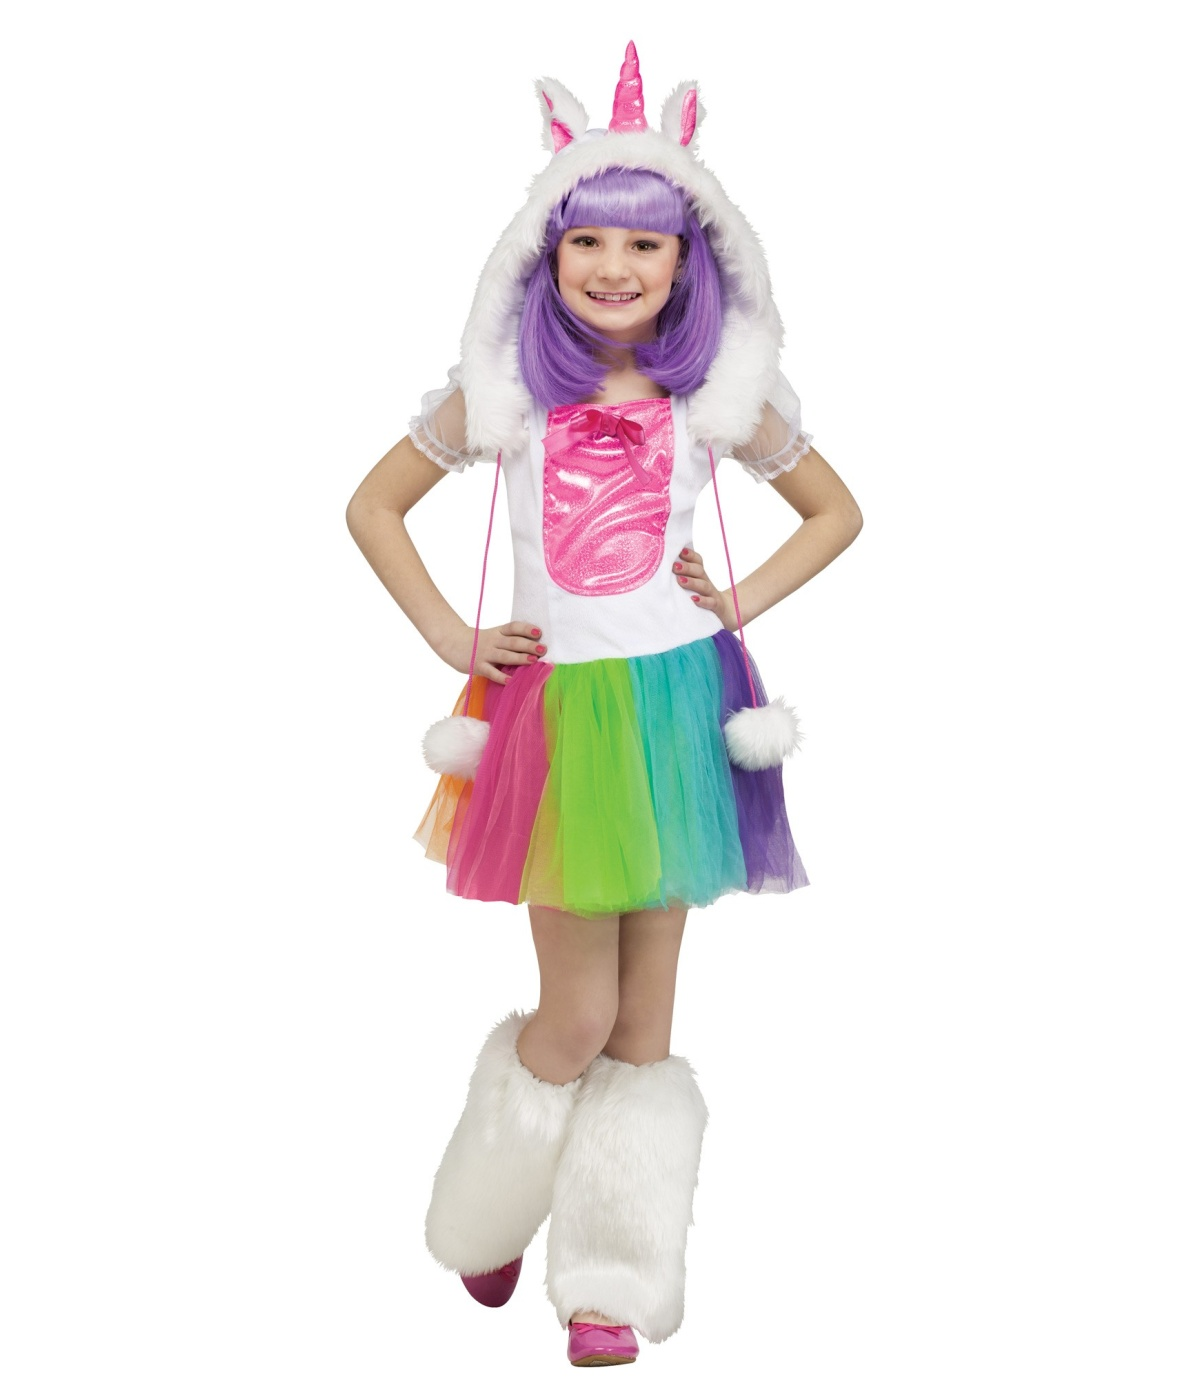 Buy your adult unicorn onesie or get your daughter a girls' unicorn costume today! Rainbows are in the air and things feel magical, so sprinkle some glitter and get your costume! Sort By: Sort. Filter Results. Quick View Shop Online for Unicorn Costumes from Wholesale Halloween Costumes.